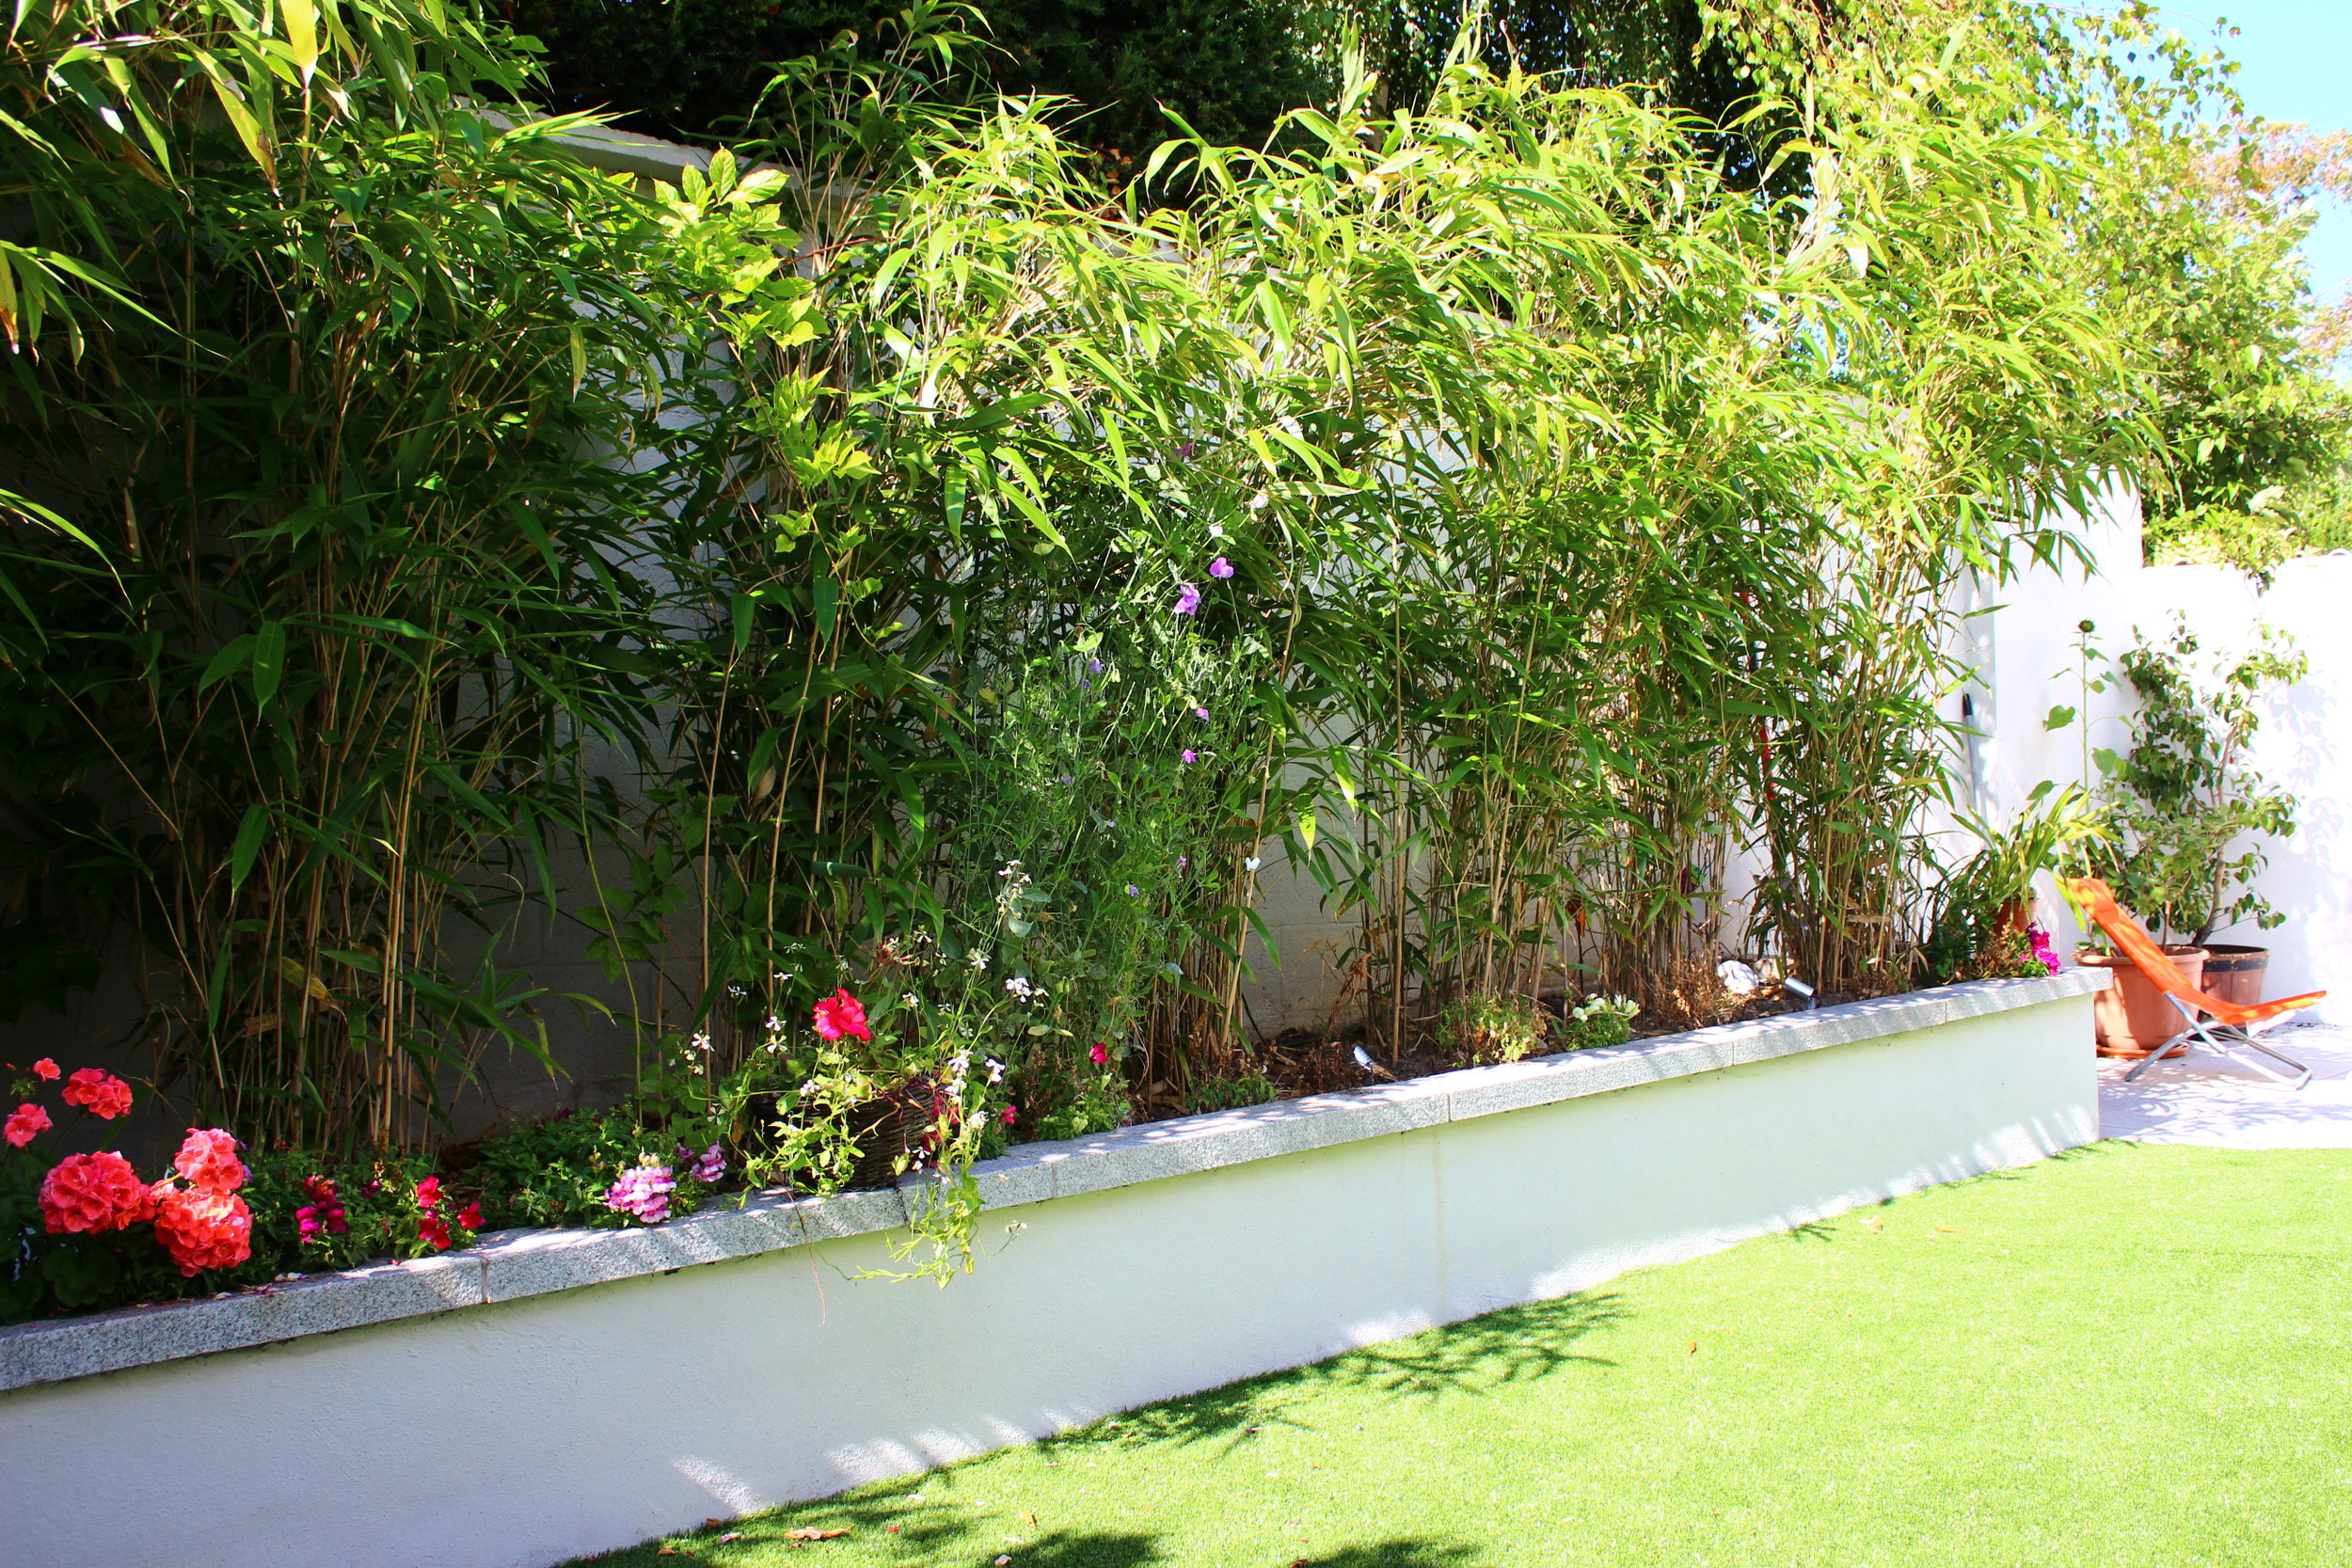 bamboo and grass